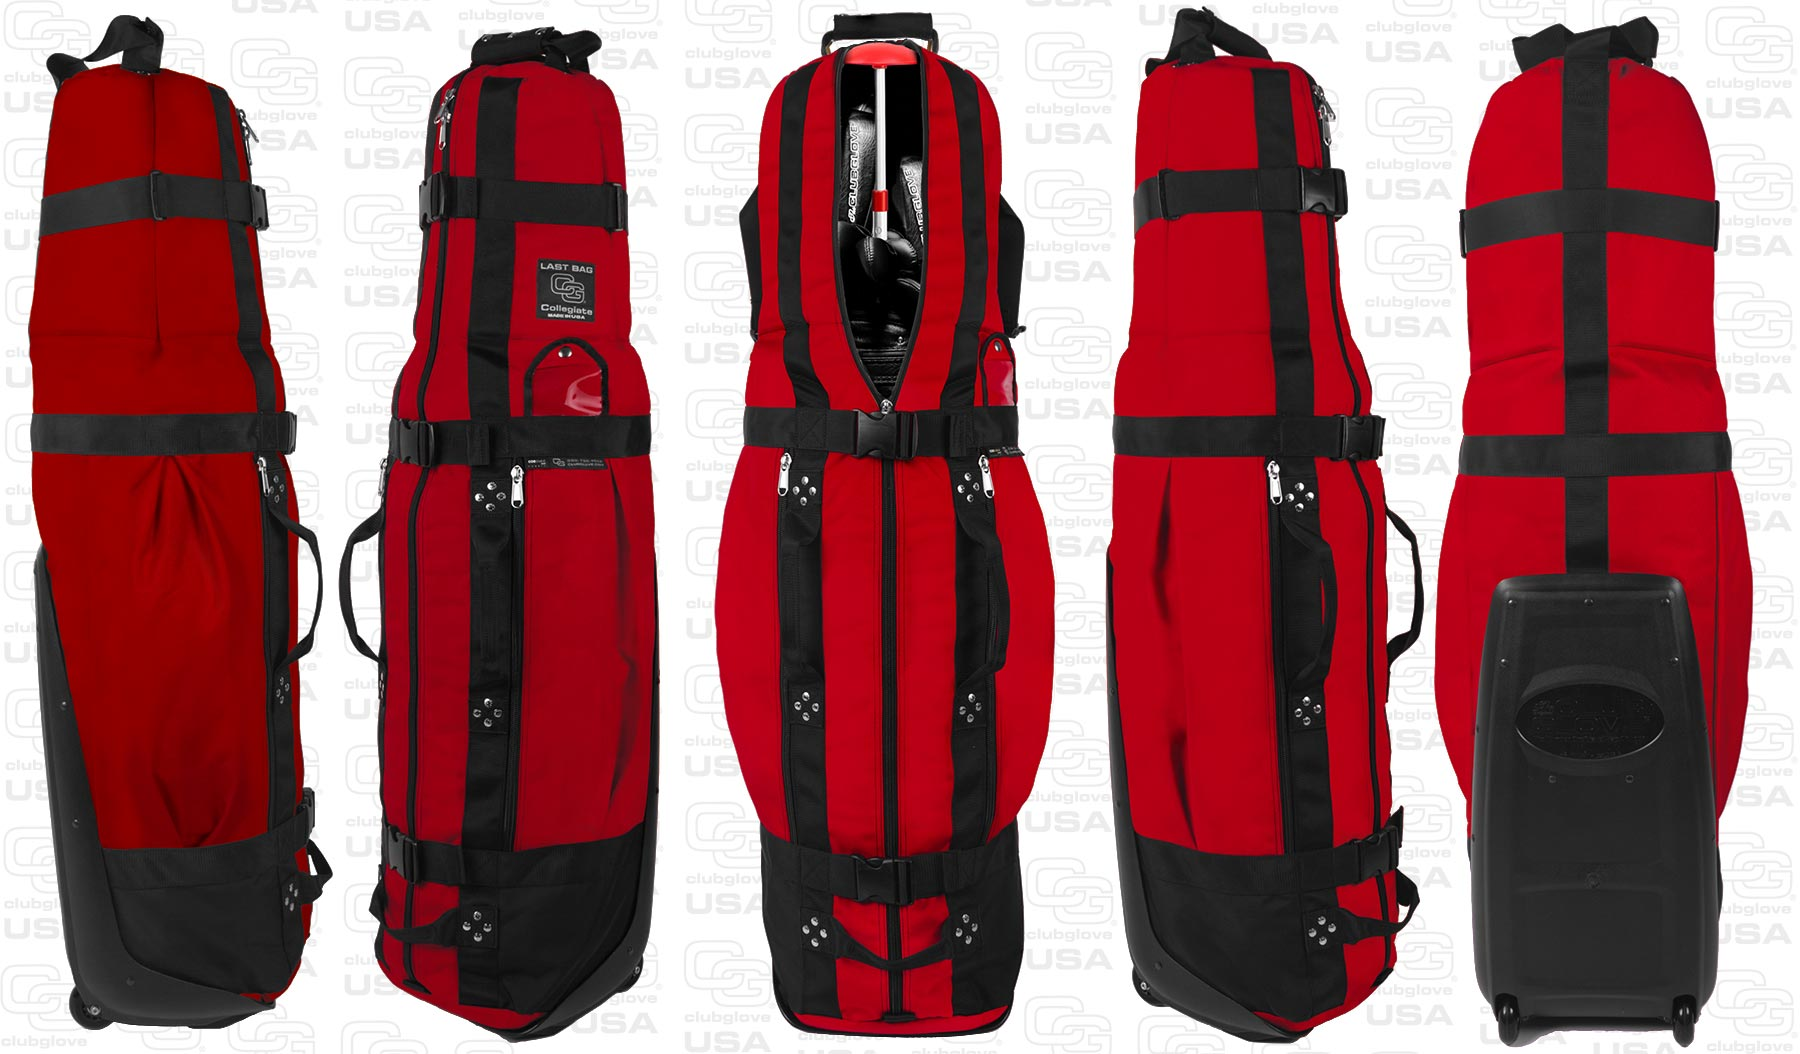 be4d32c7ac4c The best golf travel bags you can buy